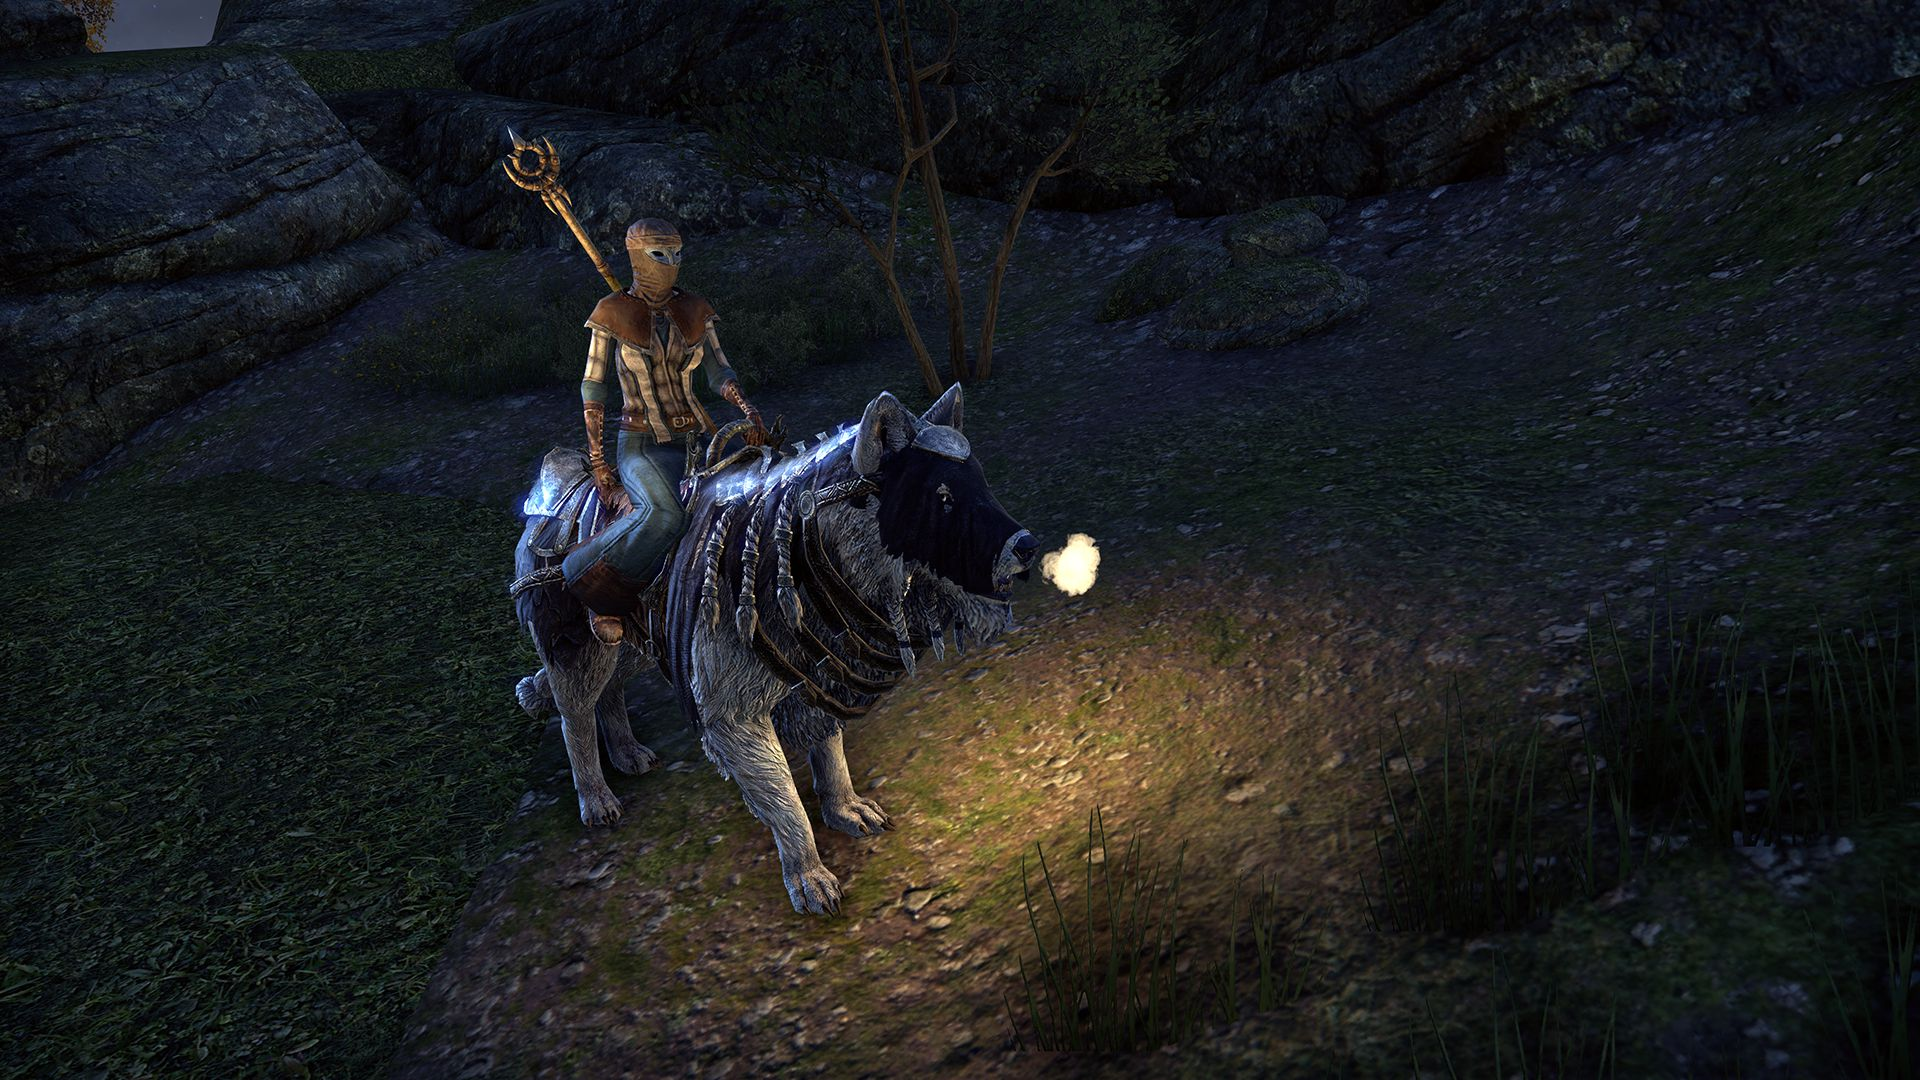 Frostbane Wolf, Apex Mount, Scalecaller Crown Crate (image by Zenimax Online)